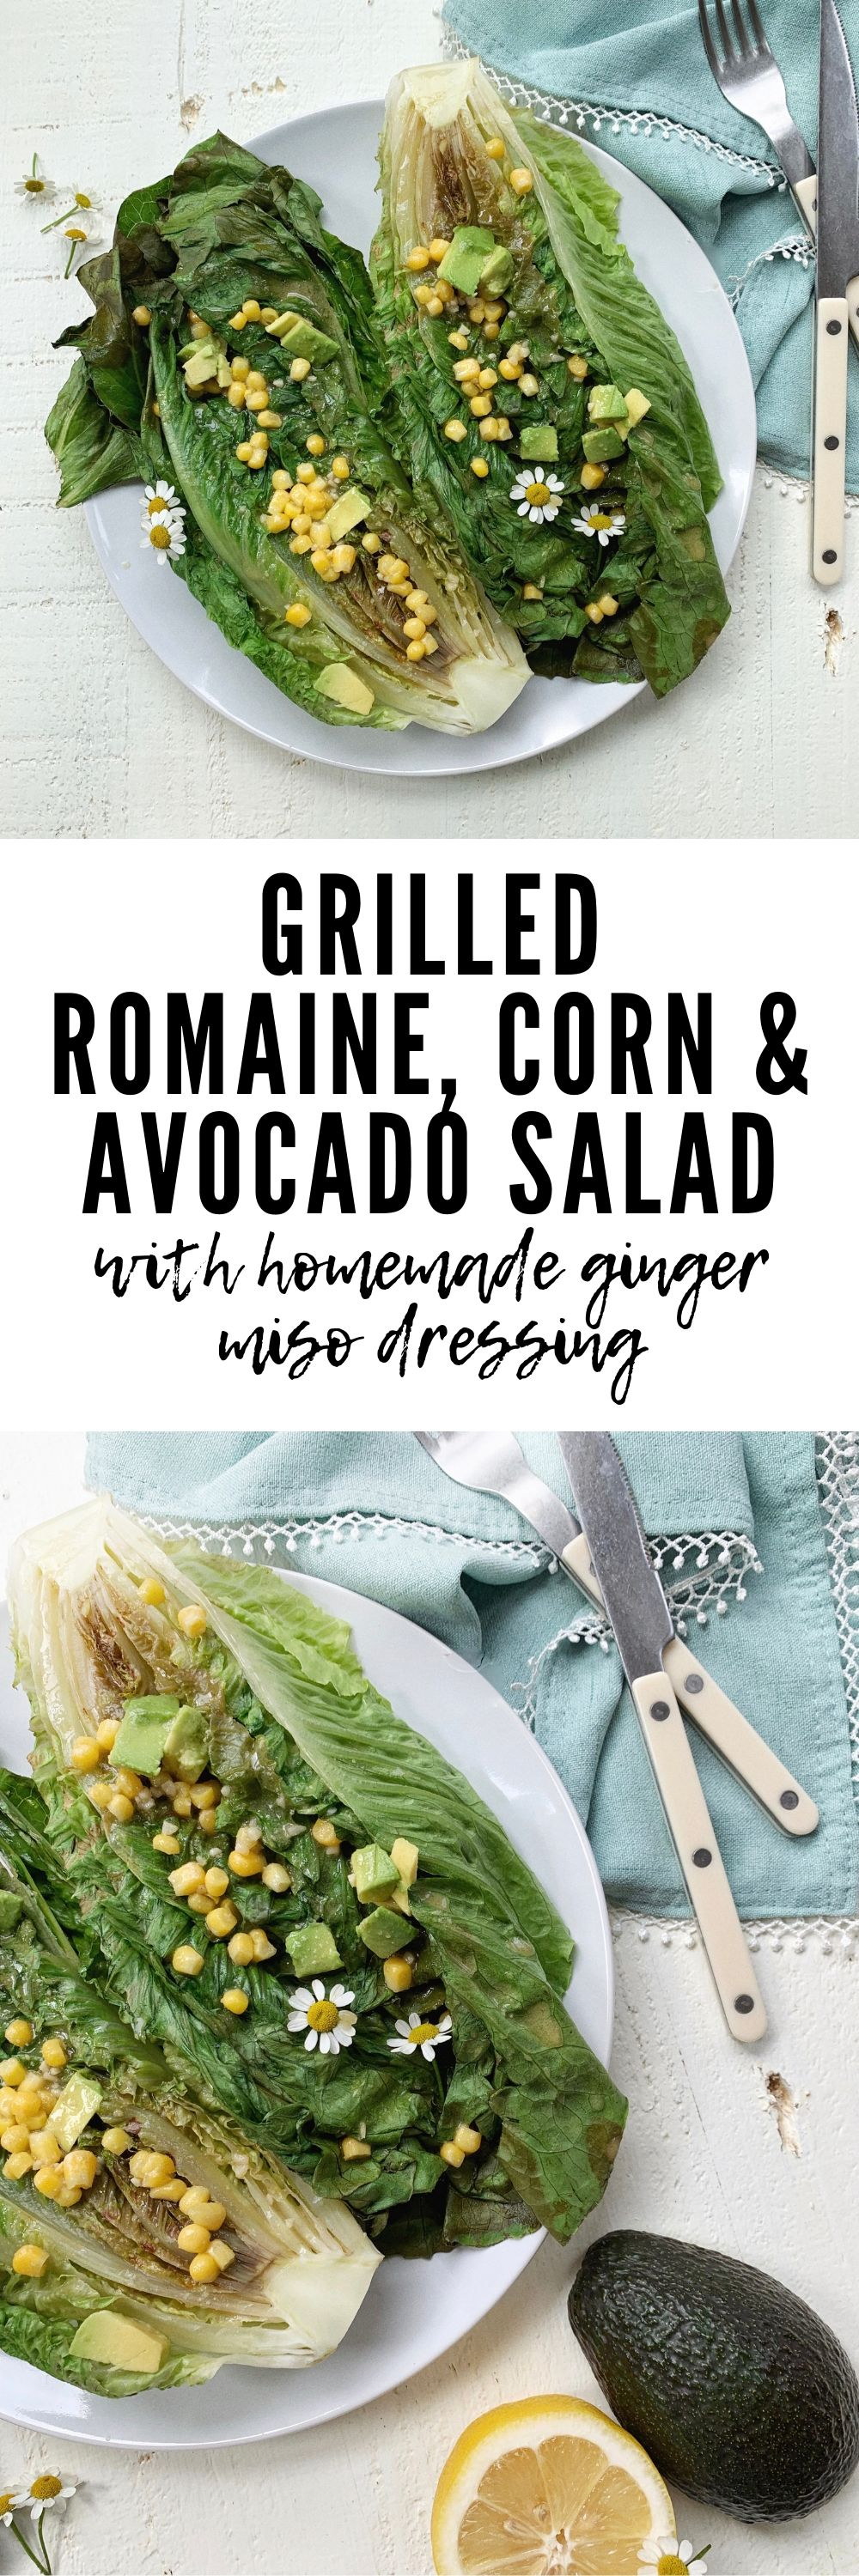 GRILLED ROMAINE, CORN & AVOCADO SALAD